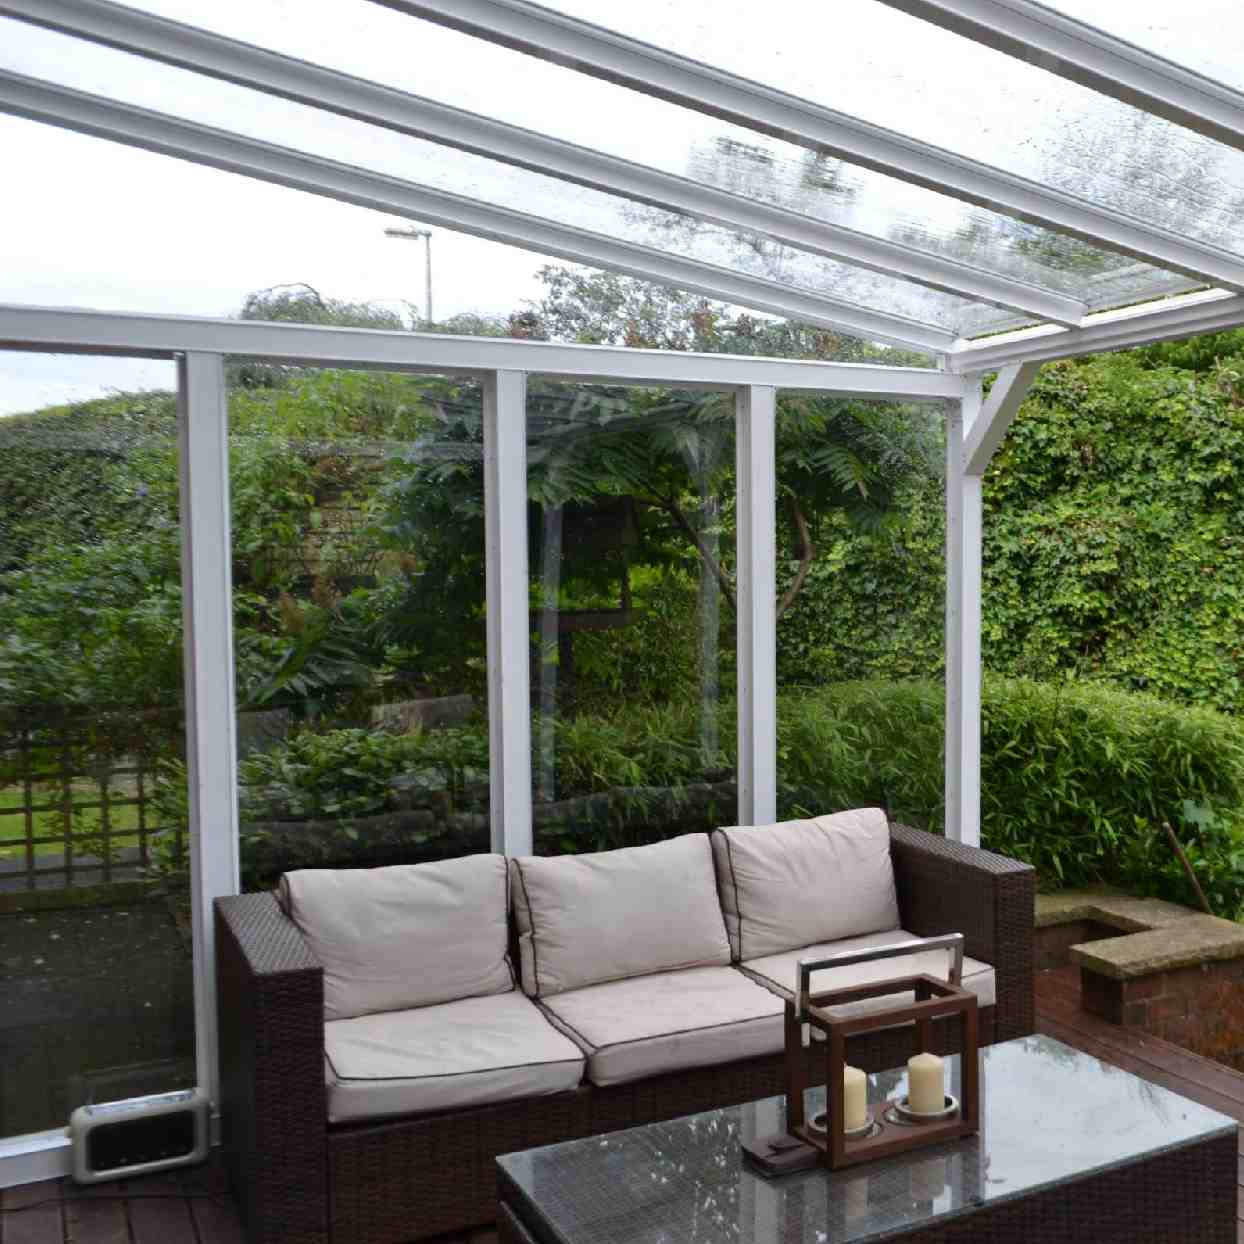 Buy Omega Verandah with 16mm Polycarbonate Glazing - 9.2m (W) x 3.5m (P), (5) Supporting Posts online today